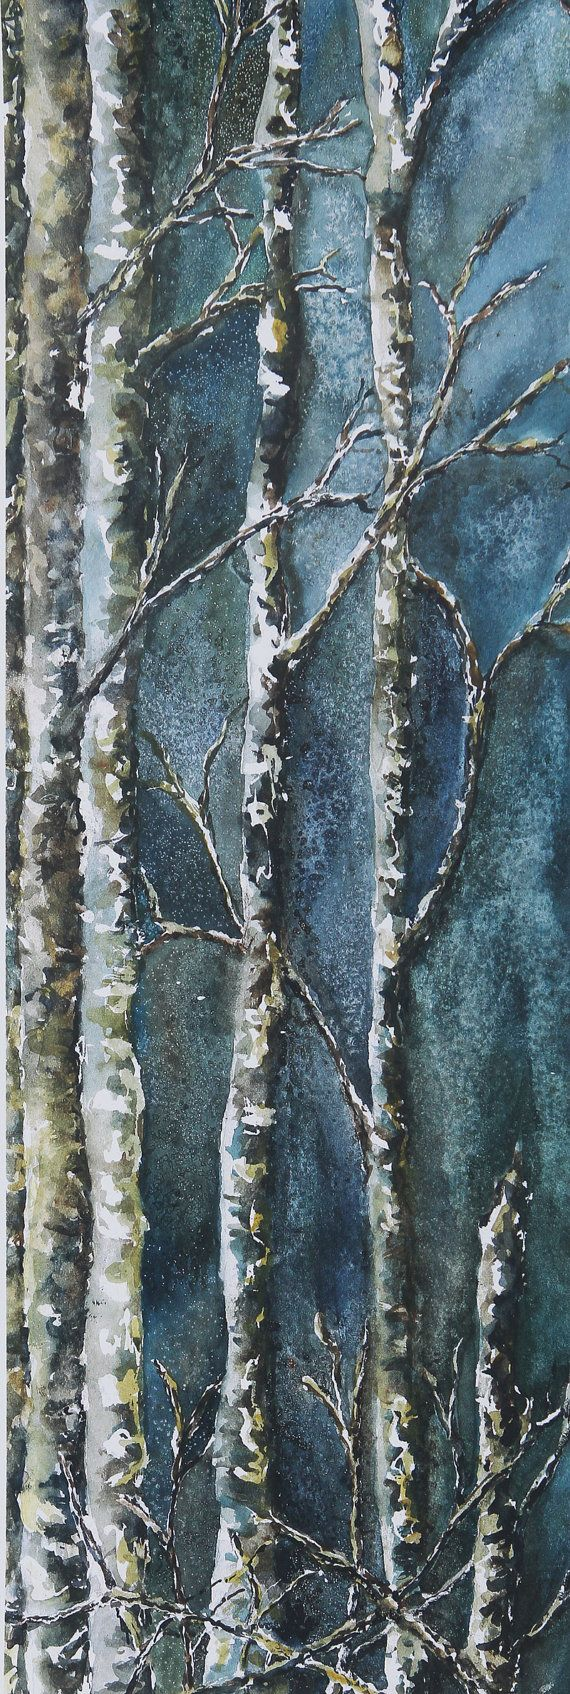 Mossy Trees watercolor by Julie Black